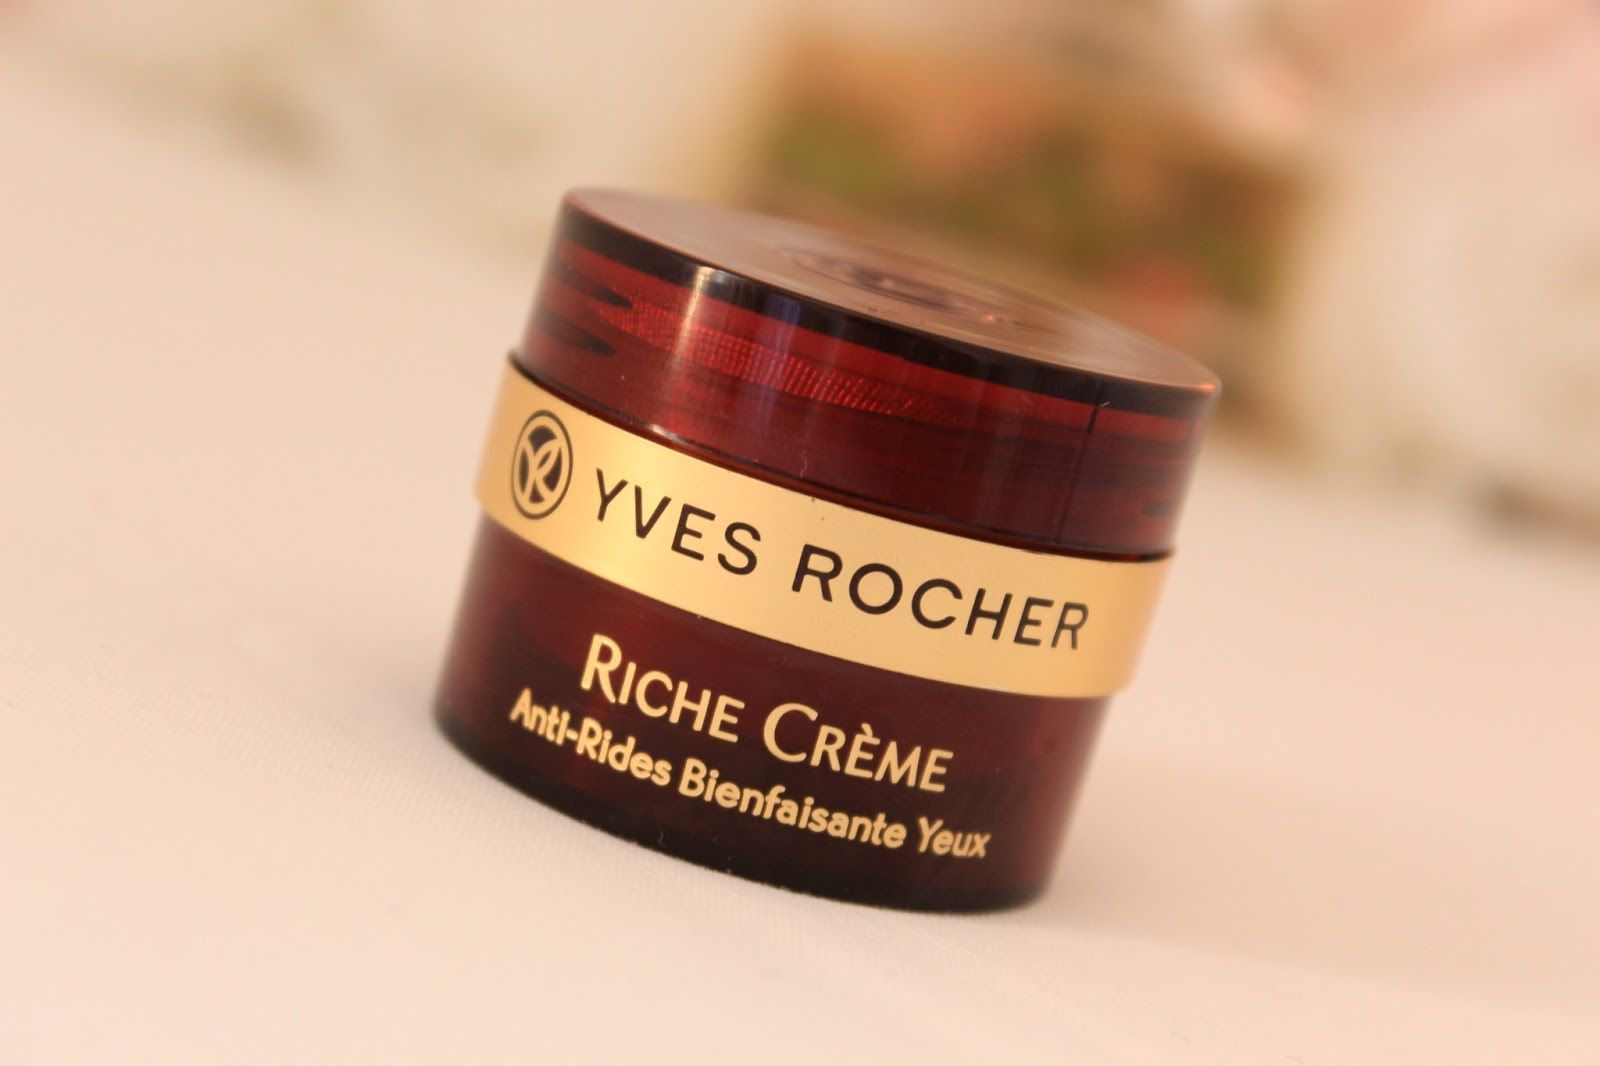 Lipgloss Amp Lashes Yves Rocher Riche Creme Eye Cream